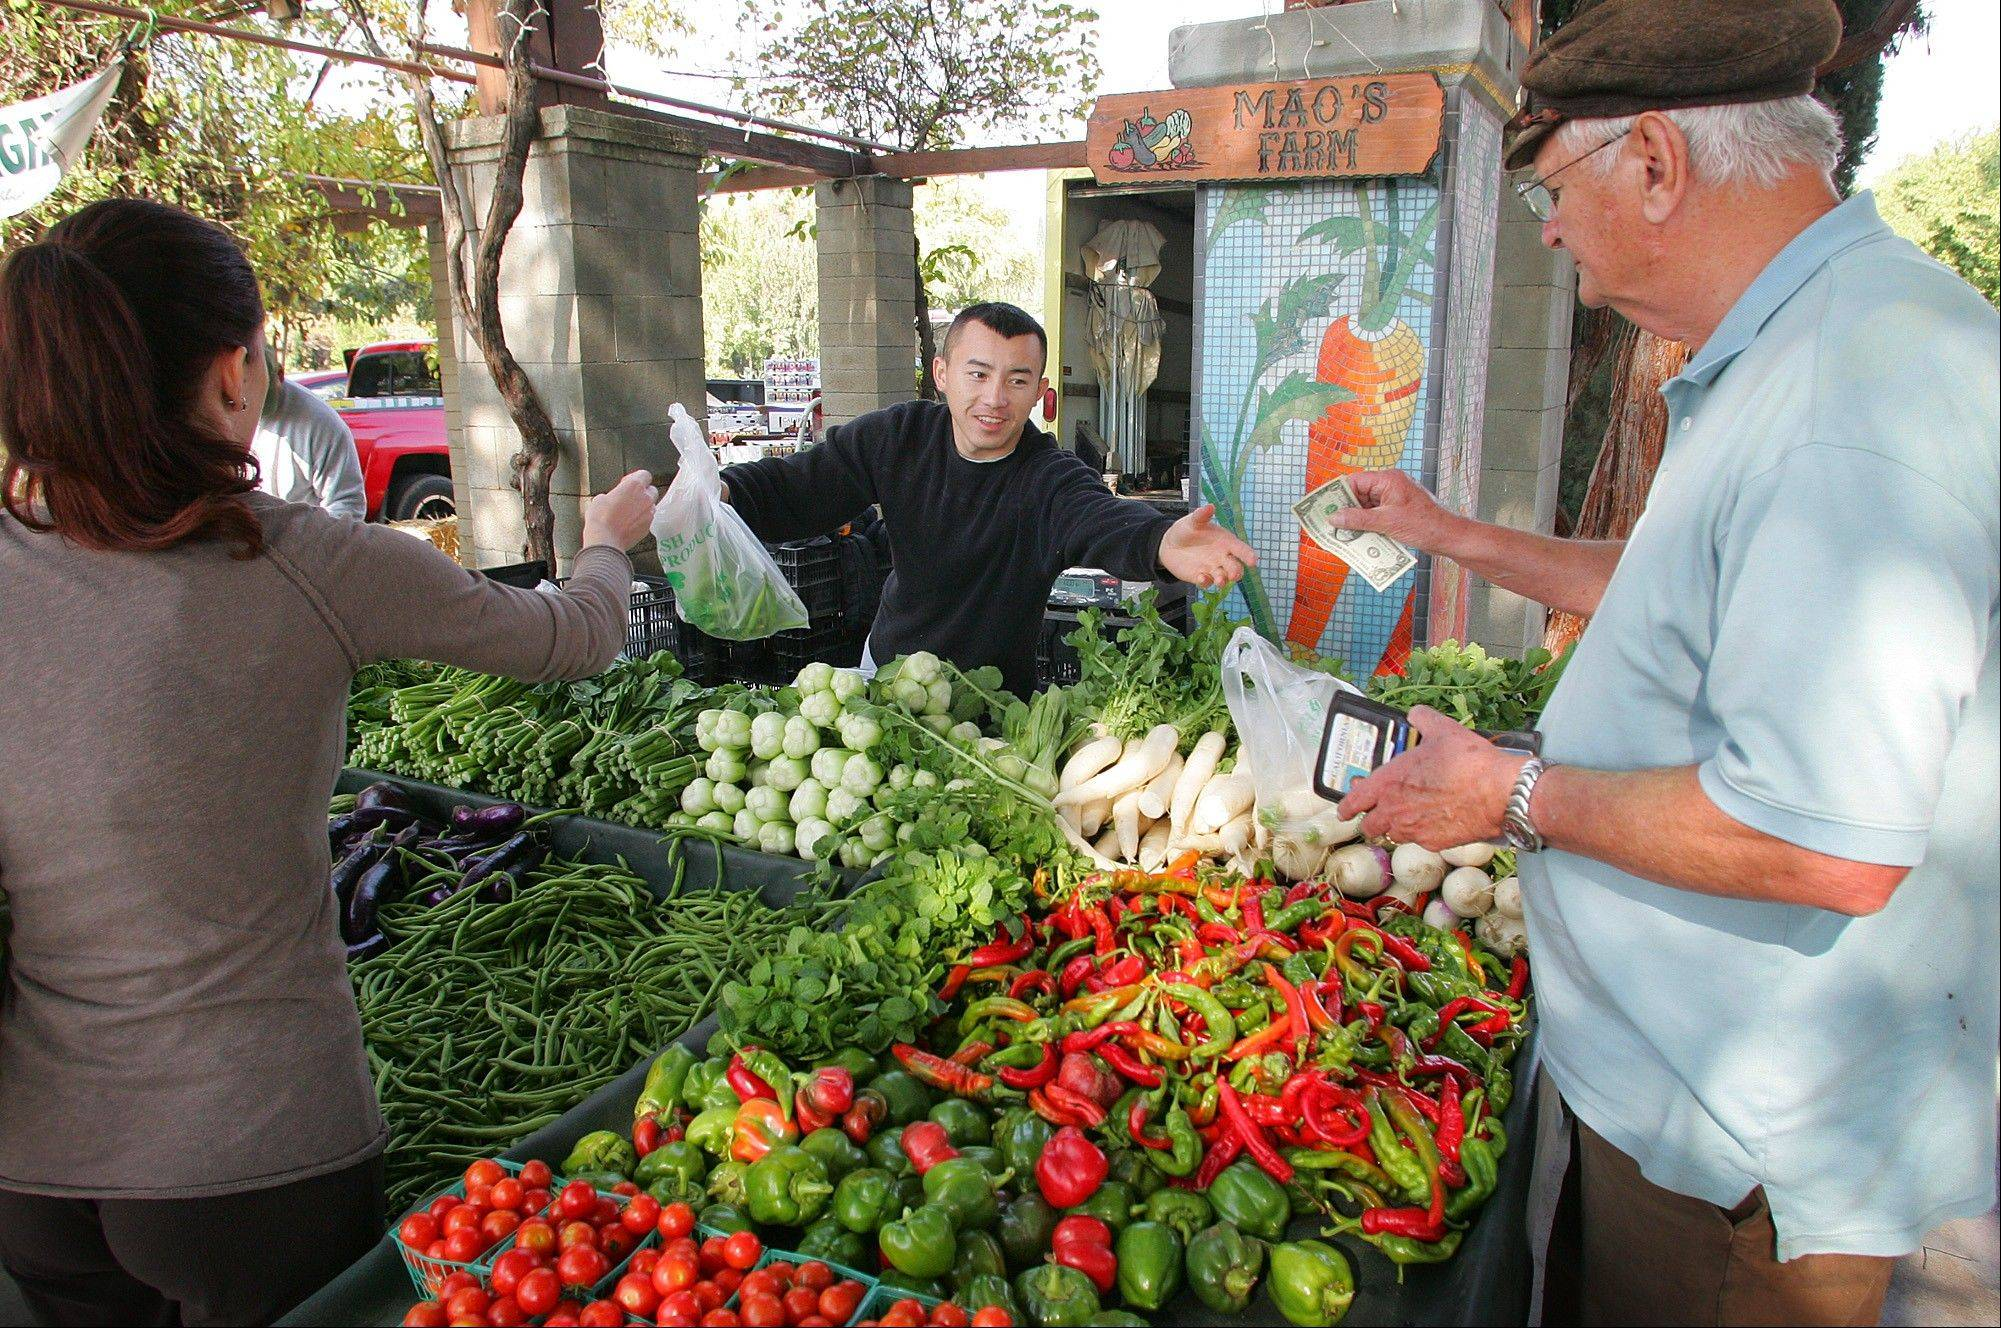 Ching Thao, of Mao's Farm, center, gives change to Richard Wolk, right, at the Vineyard Farmers Market in Fresno, Calif.